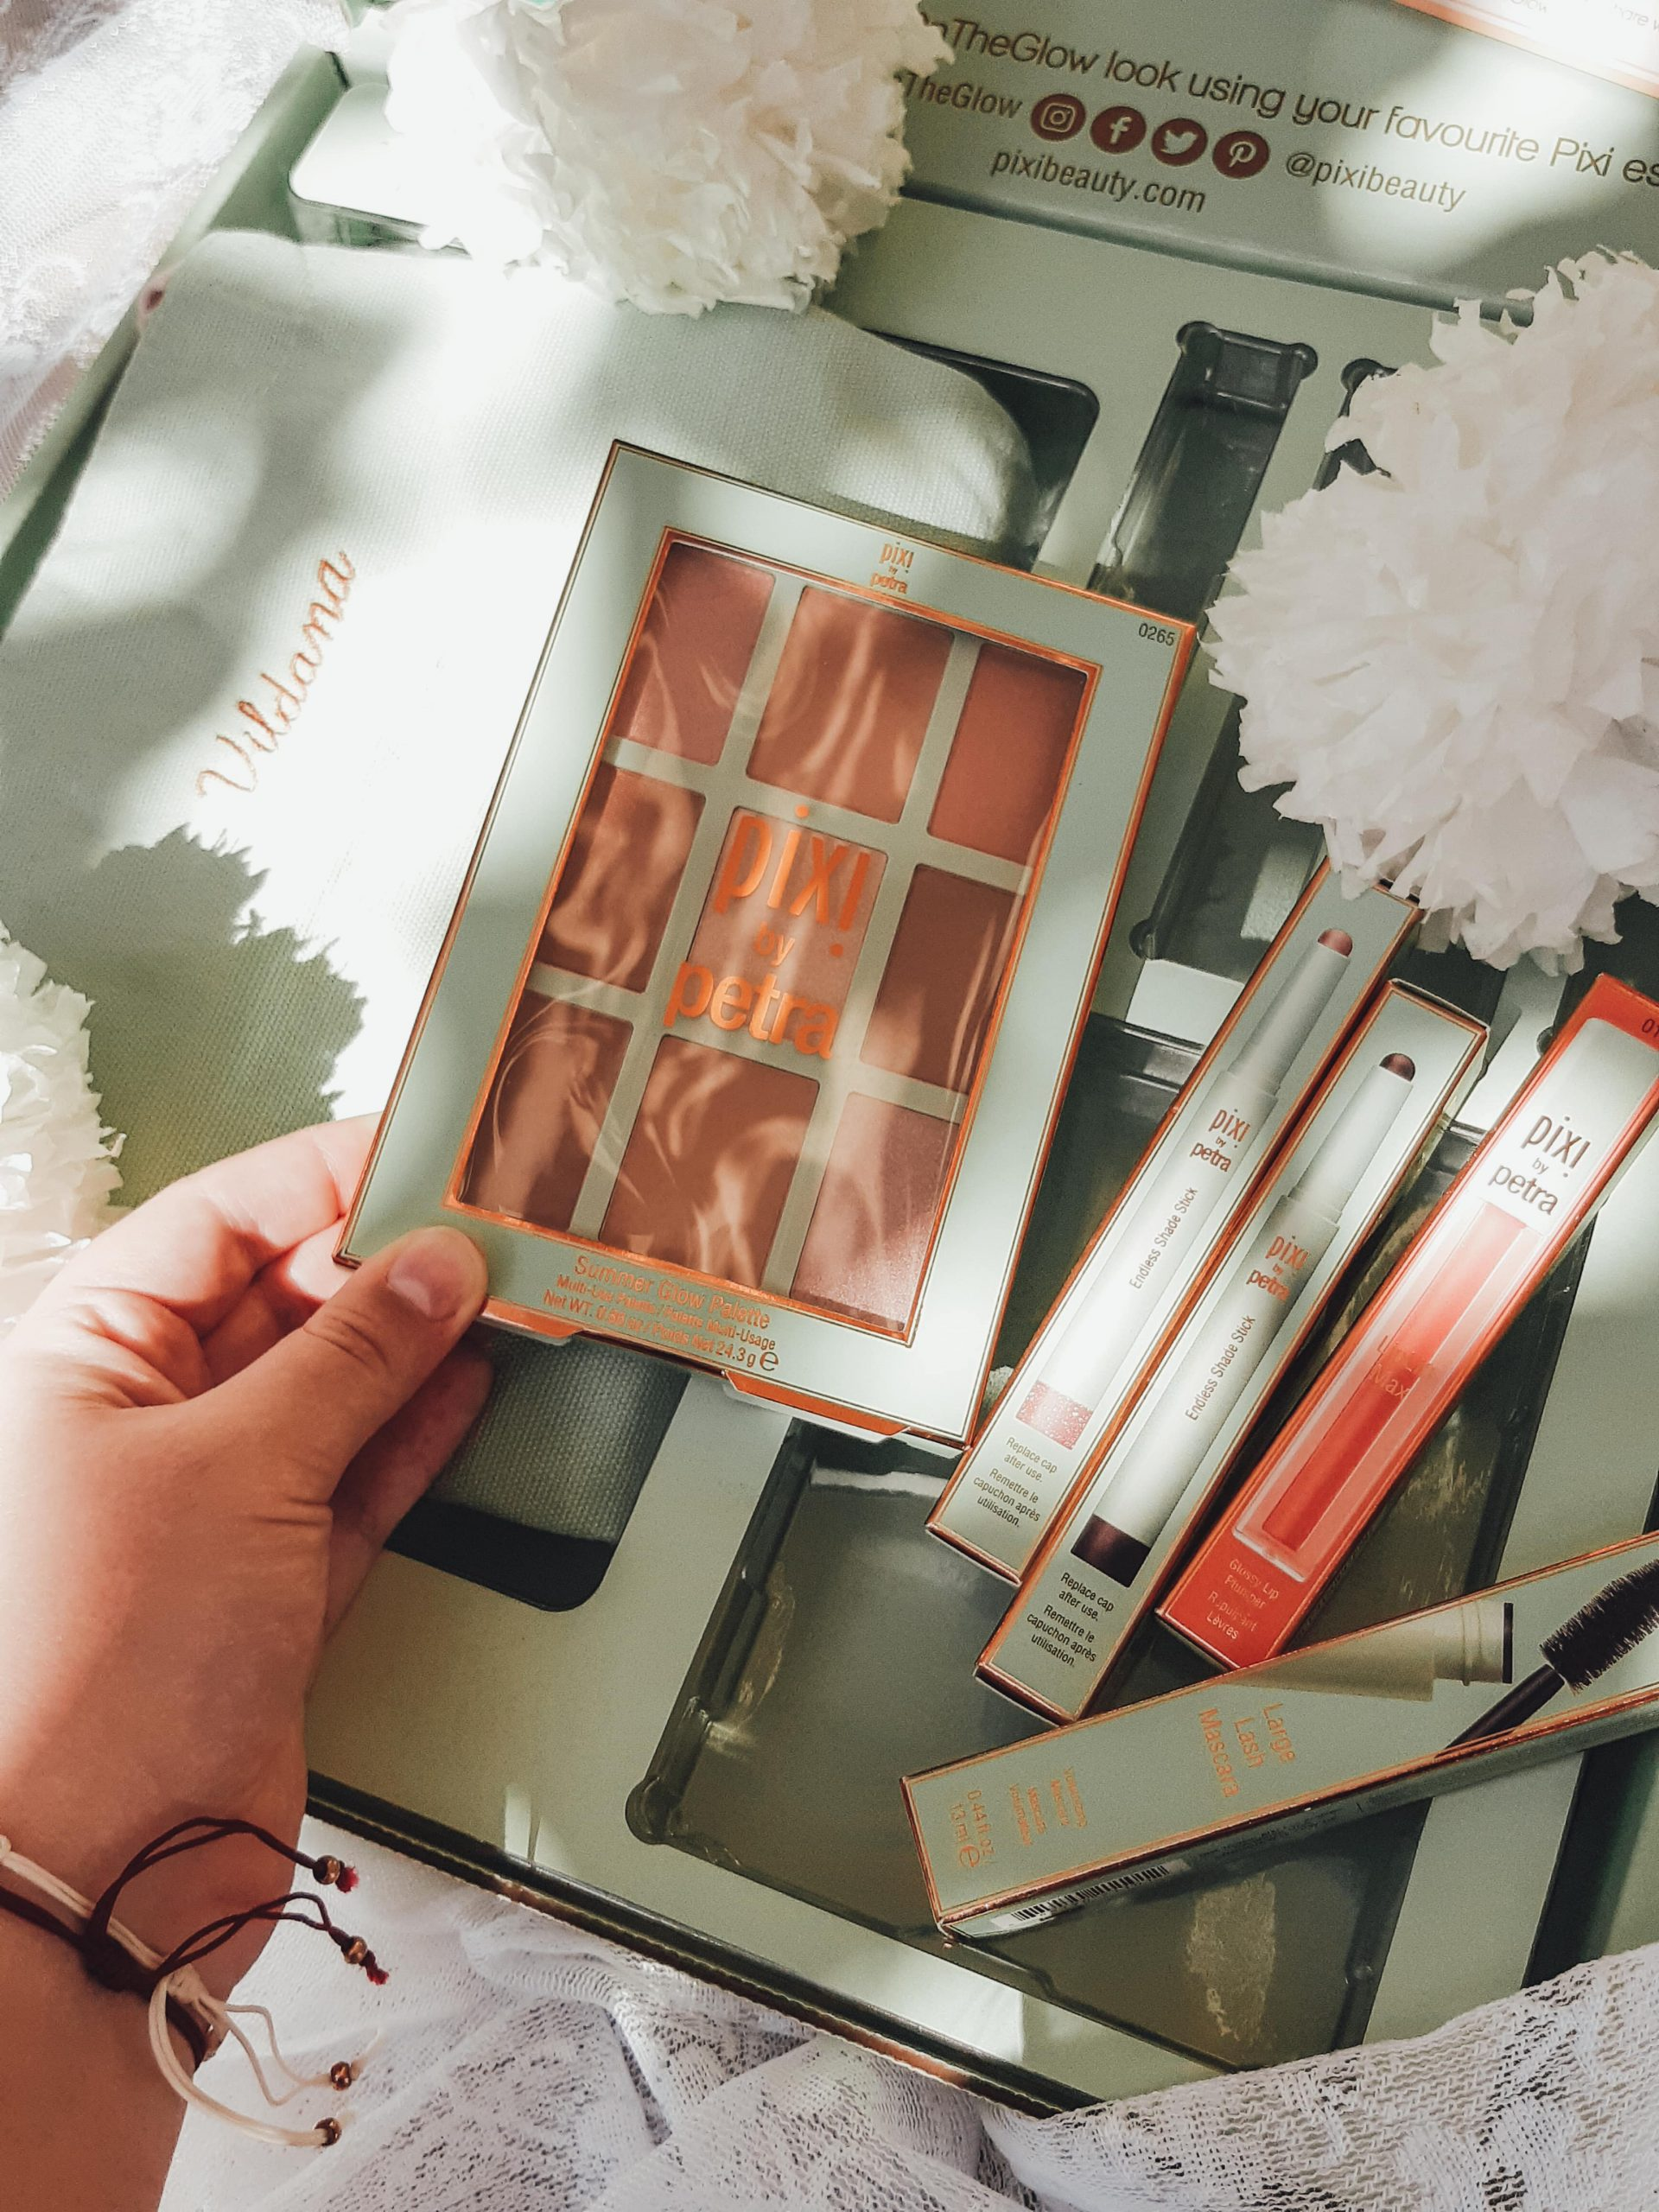 pixi beauty pr package unboxing livinglikev fashion blogger